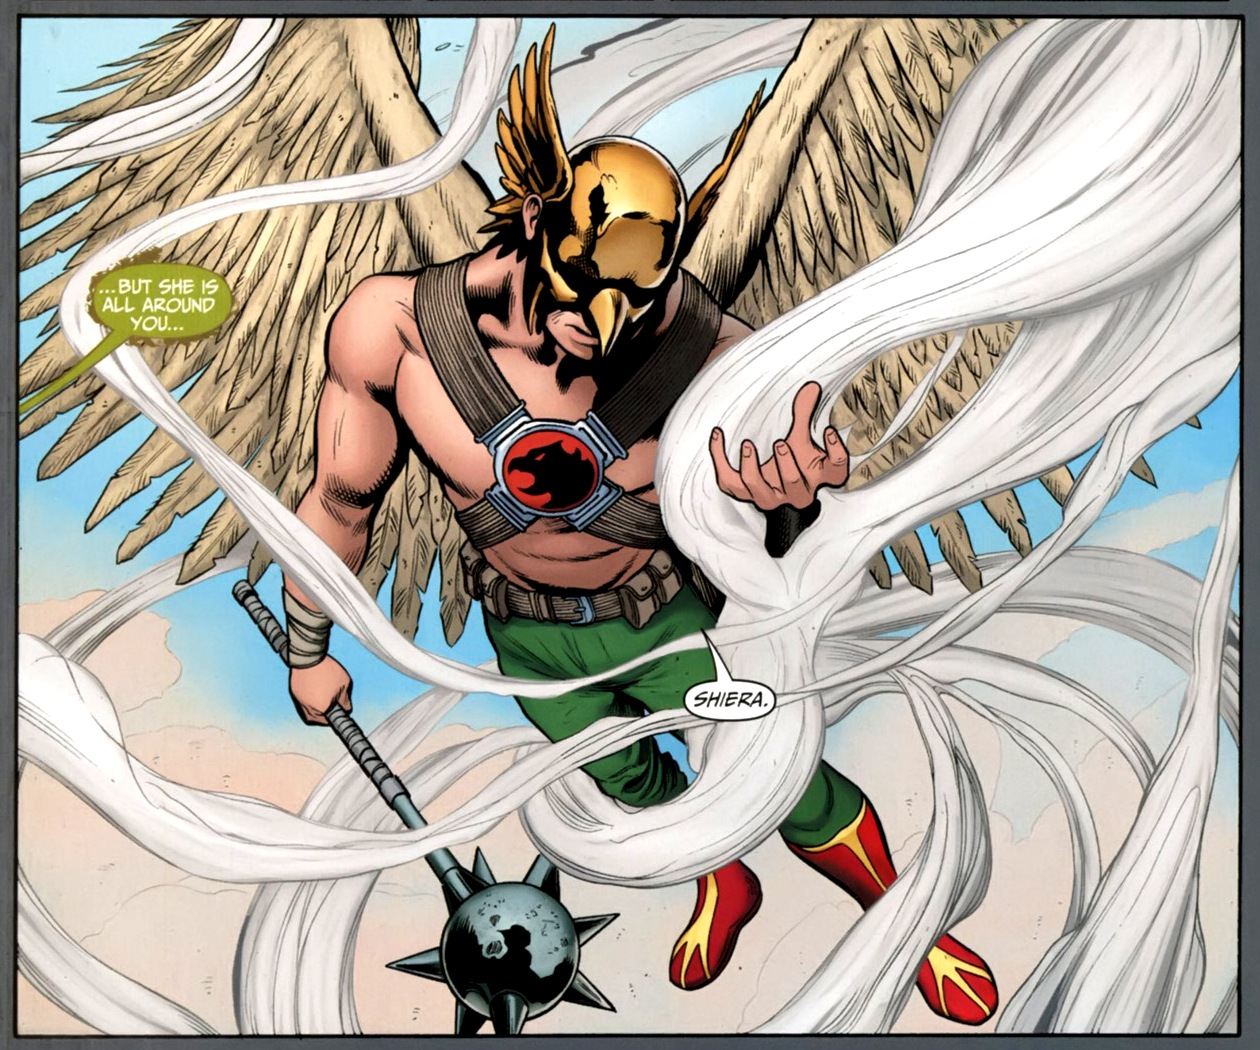 http://img3.wikia.nocookie.net/__cb20111127233310/marvel_dc/images/6/6c/Hawkman_0011.jpg